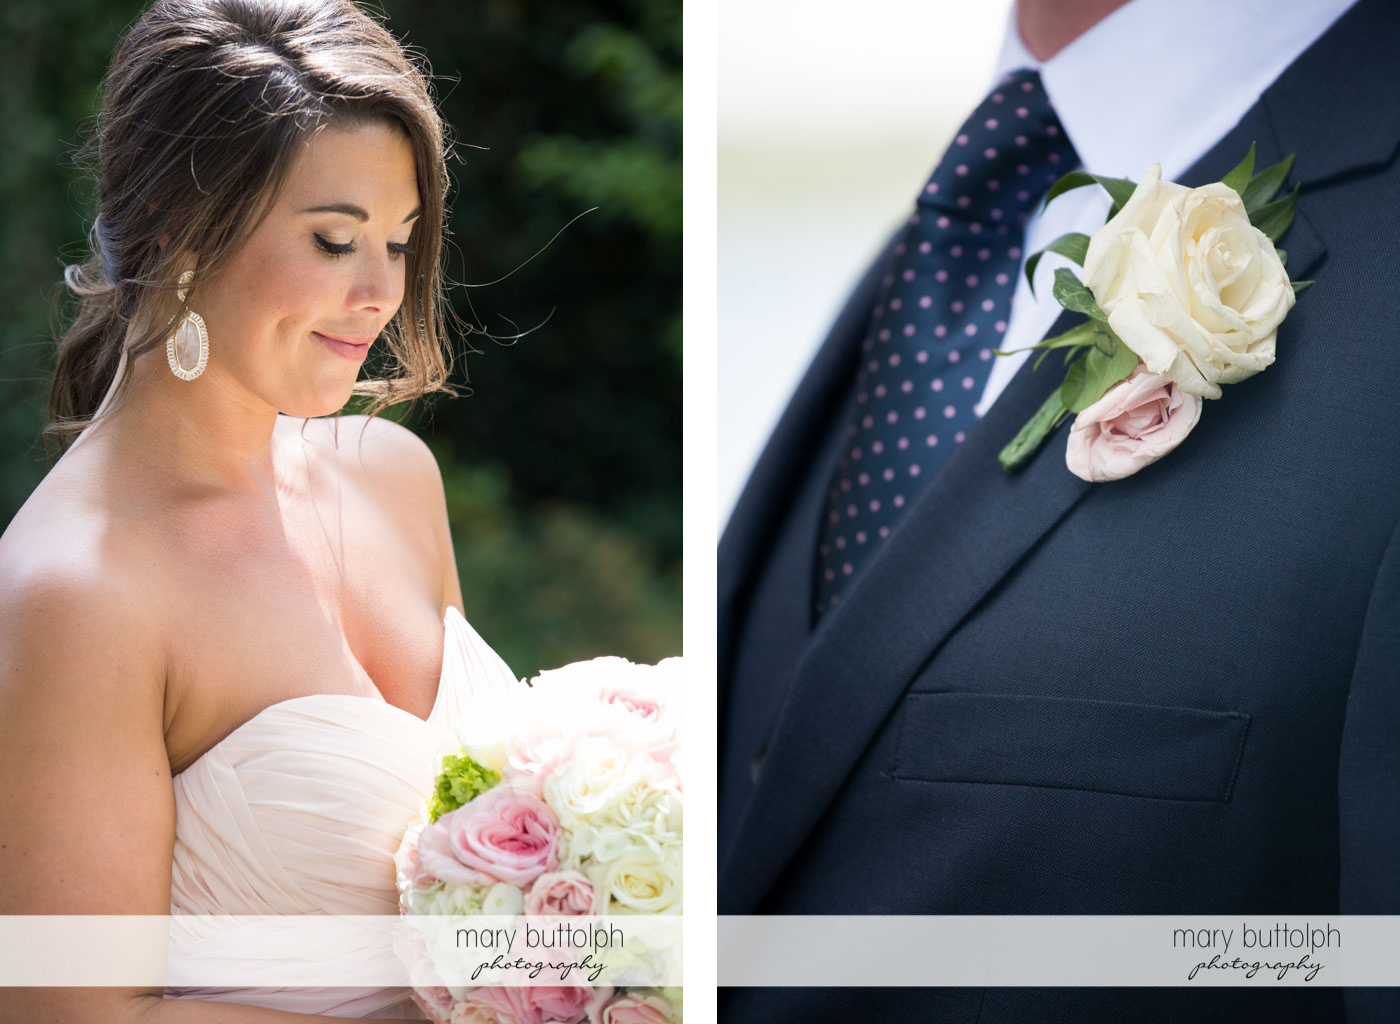 Medium shot of the bride with a bouquet and a close up shot of the groom's boutonniere at Skaneateles Country Club Wedding